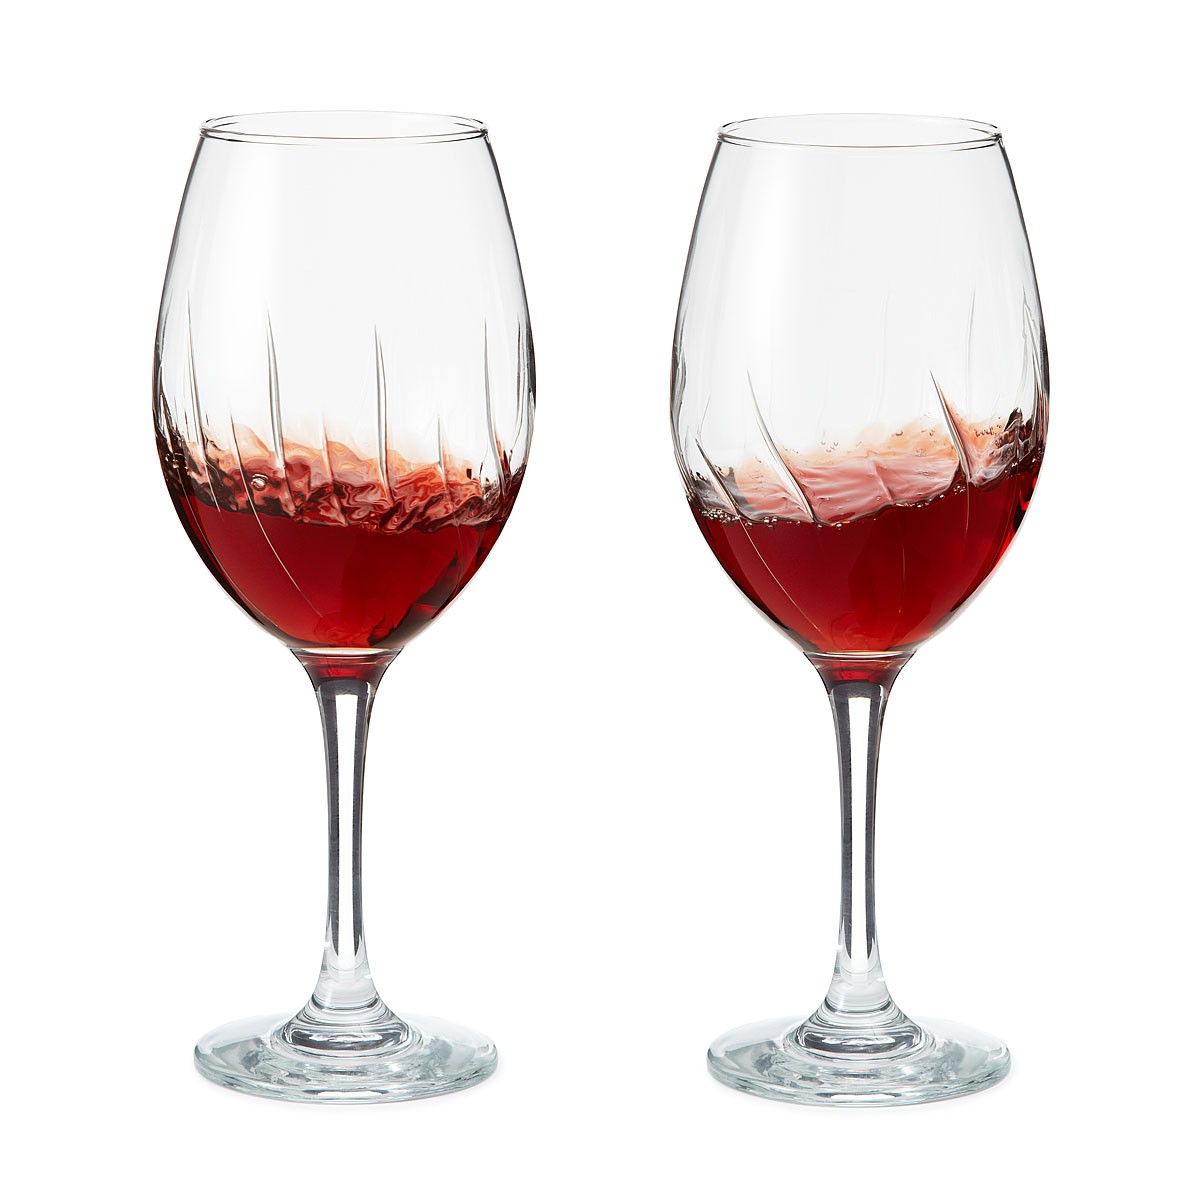 Cheap Wine Glasses 20 Decorative Wine Glasses For Impressing Your Guests A